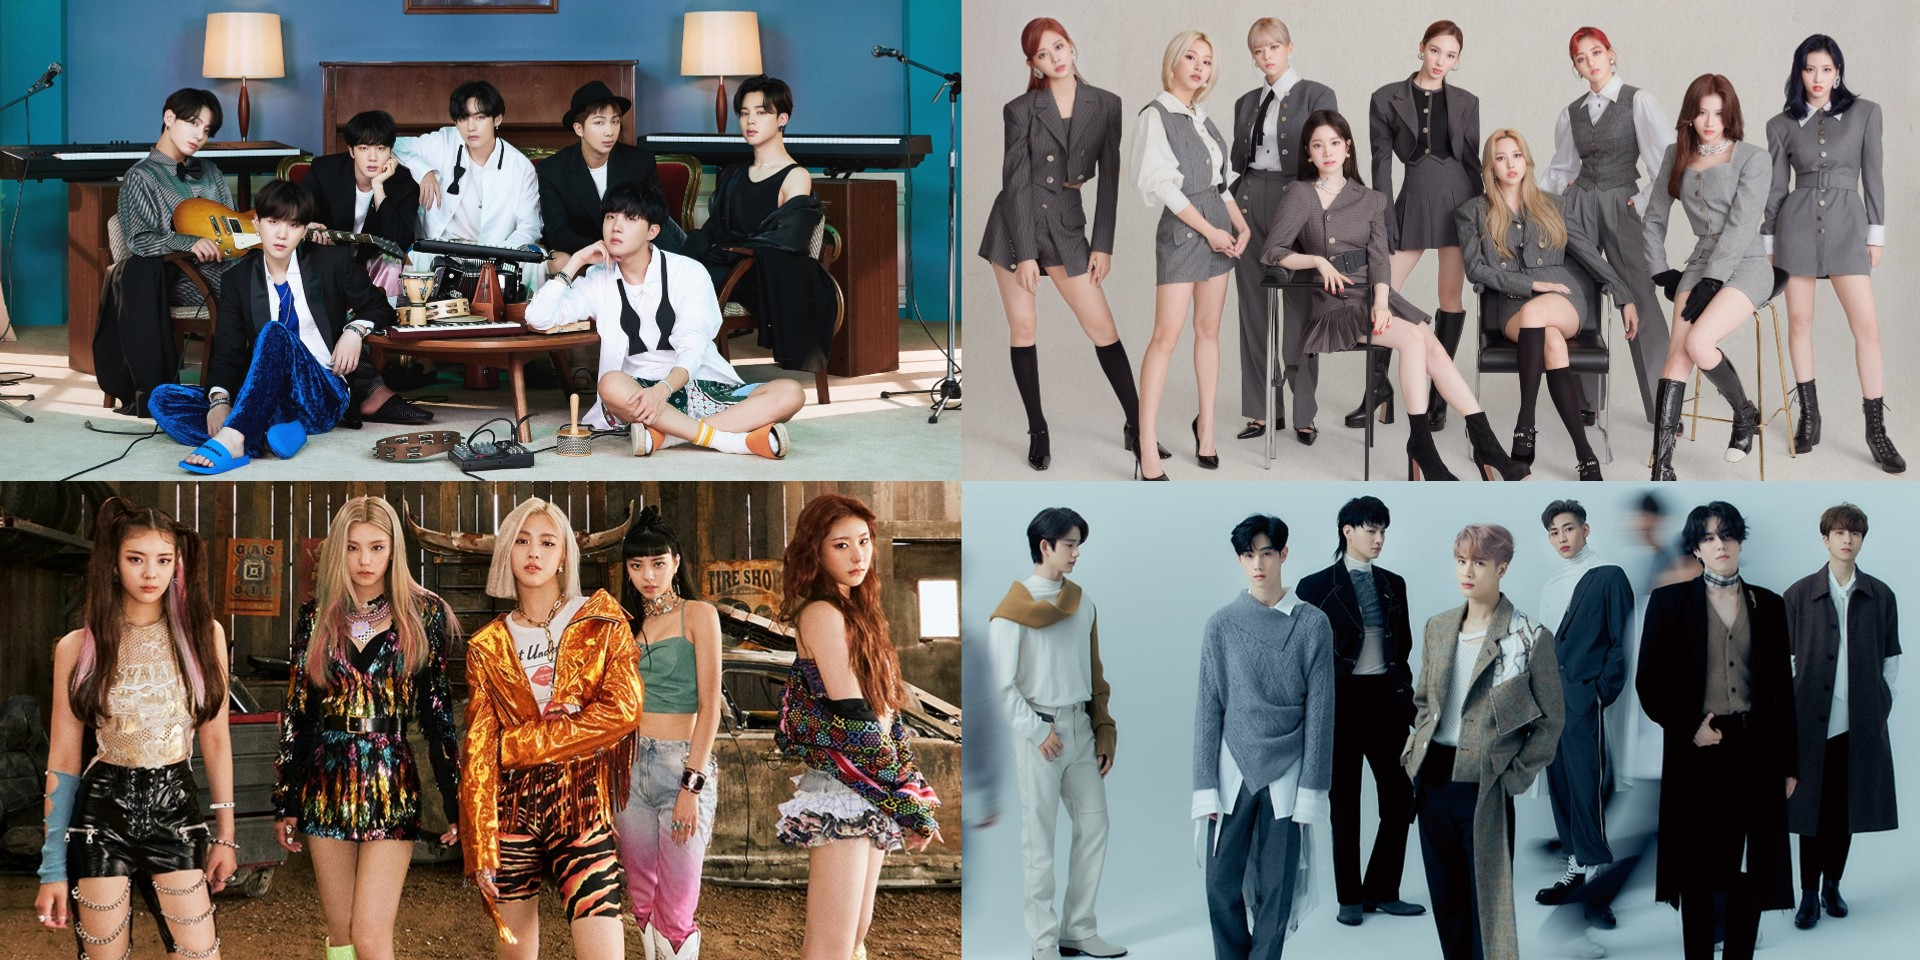 BTS, TWICE, ITZY, GOT7, and more to perform at 2020 KBS Song Festival